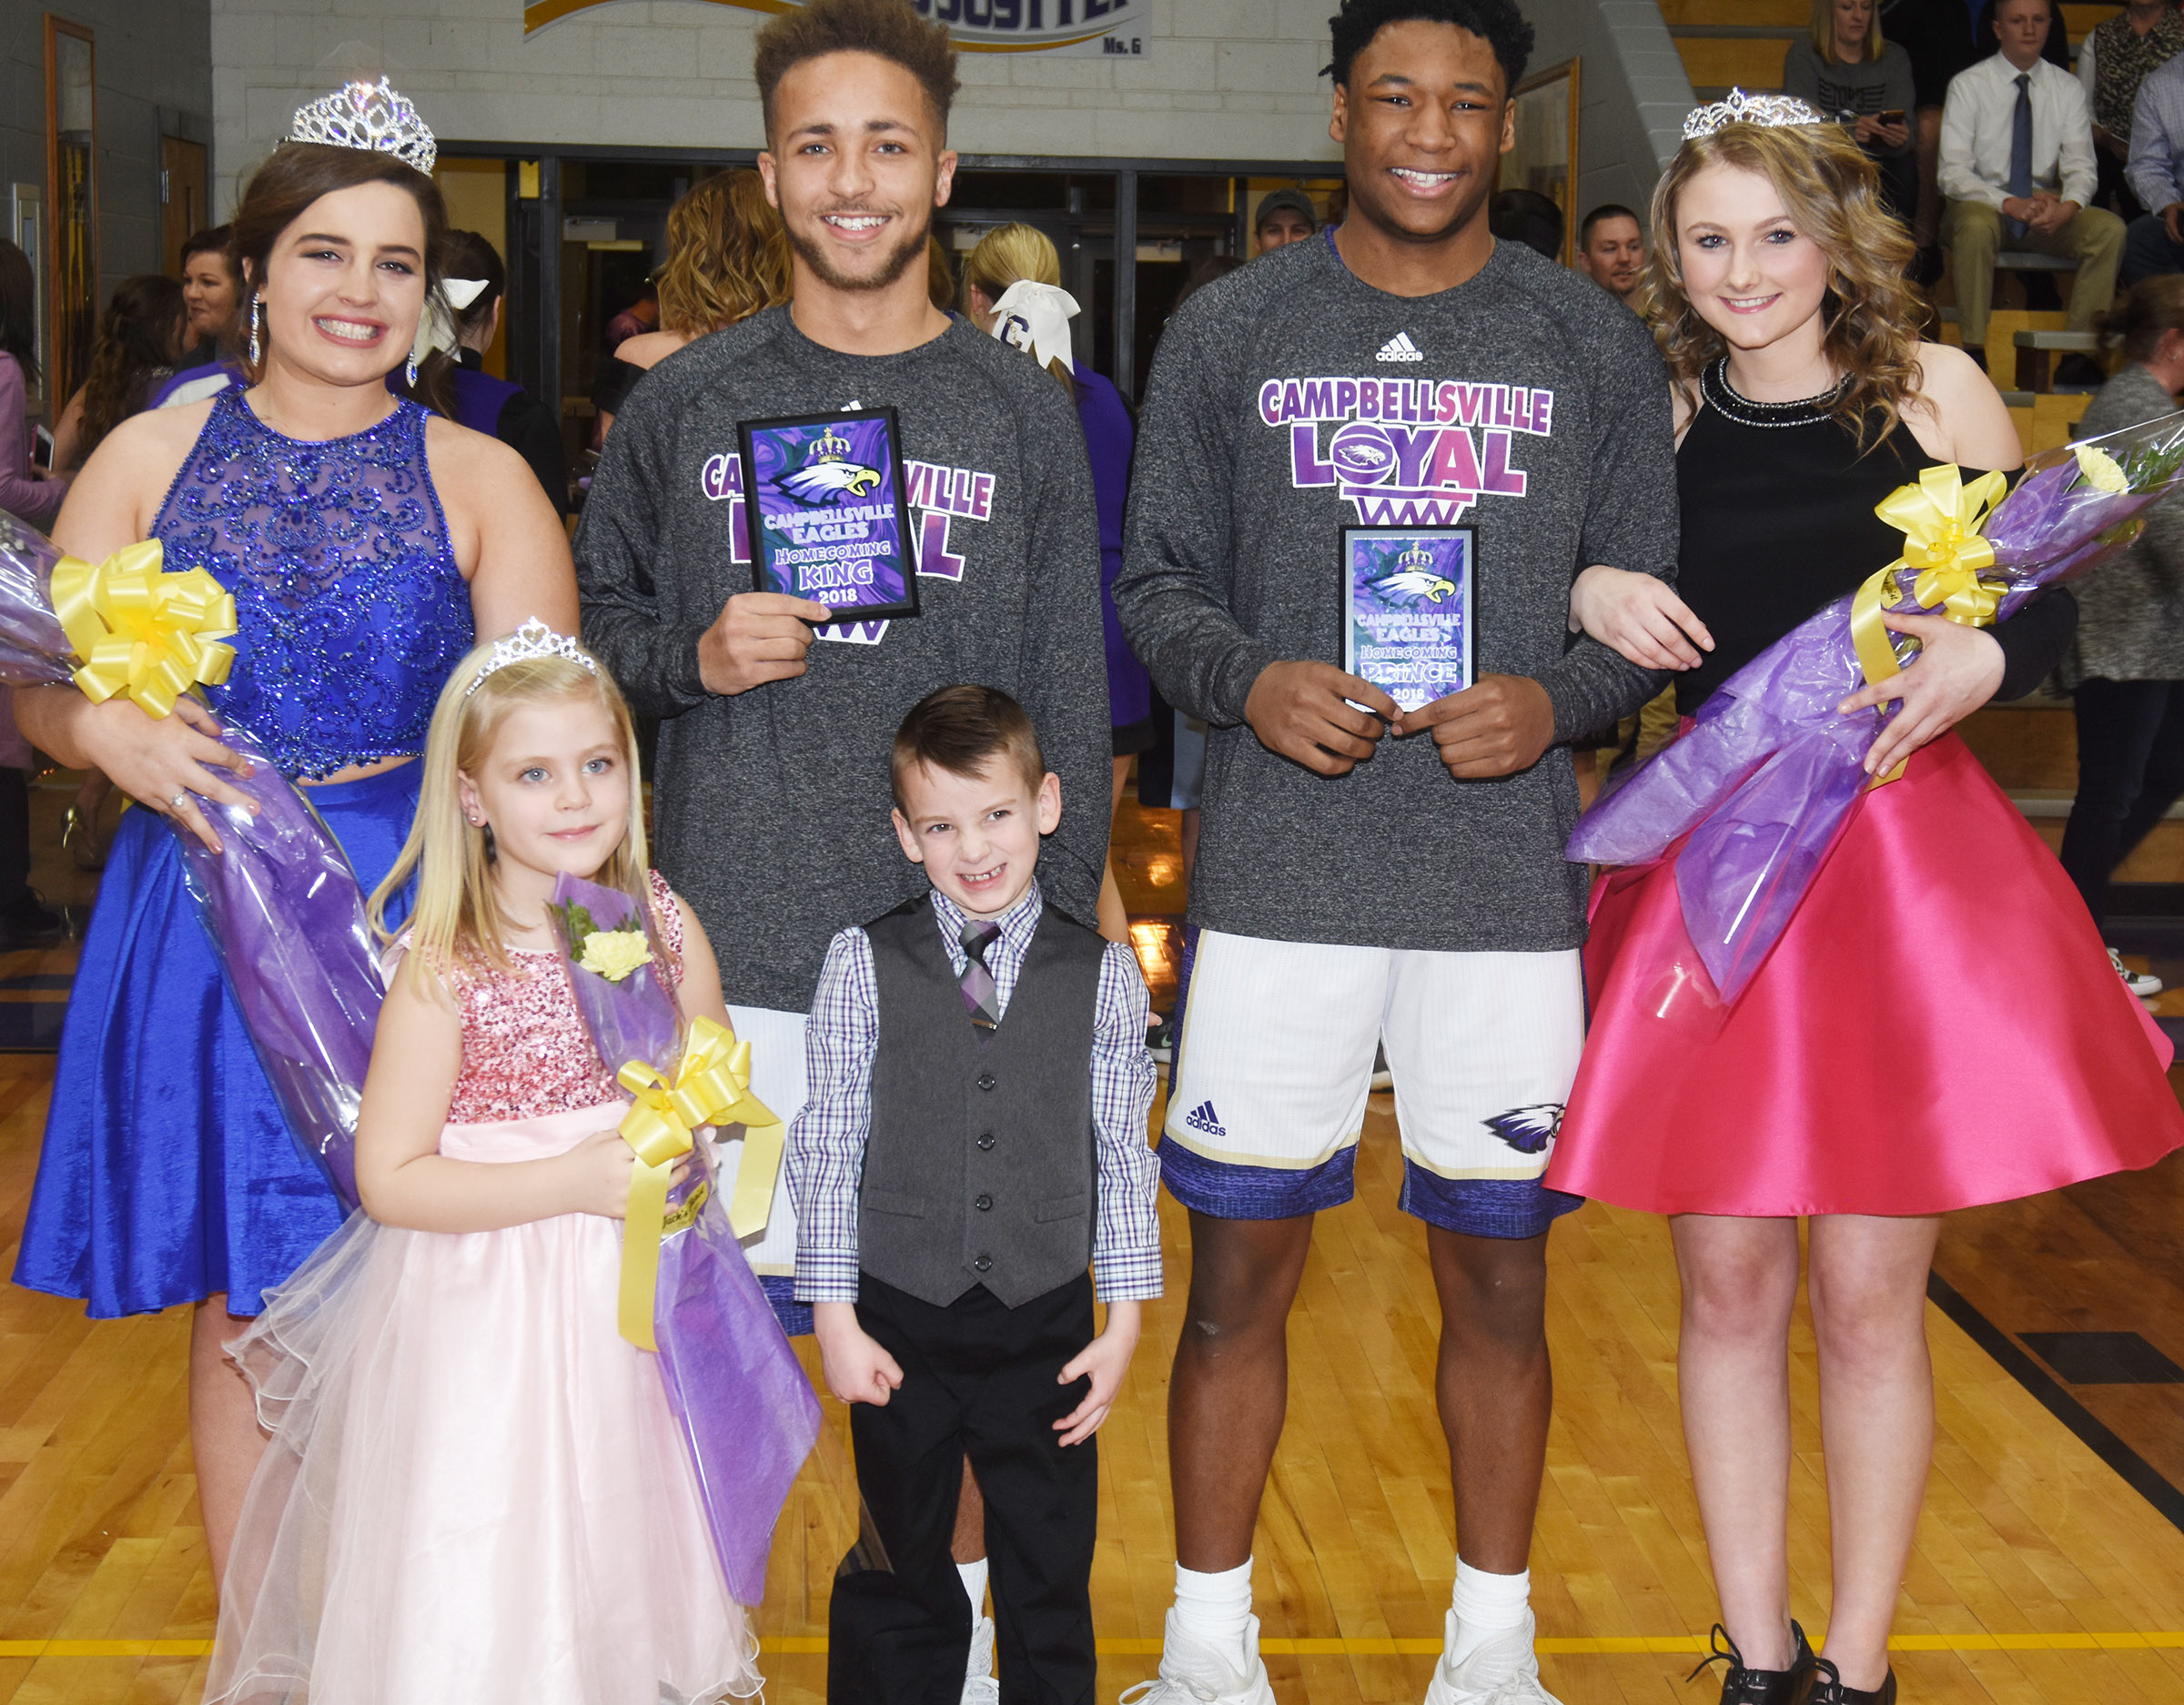 CHS seniors Caitlin Bright and Ethan Lay, at left, were named this year's basketball homecoming queen and king. Taj Sanders and Victoria Cox, representing the junior and sophomore classes, respectively, were named prince and princess. Campbellsville Elementary School kindergarteners Remi Petett and Cash Cowan were the crown bearers.